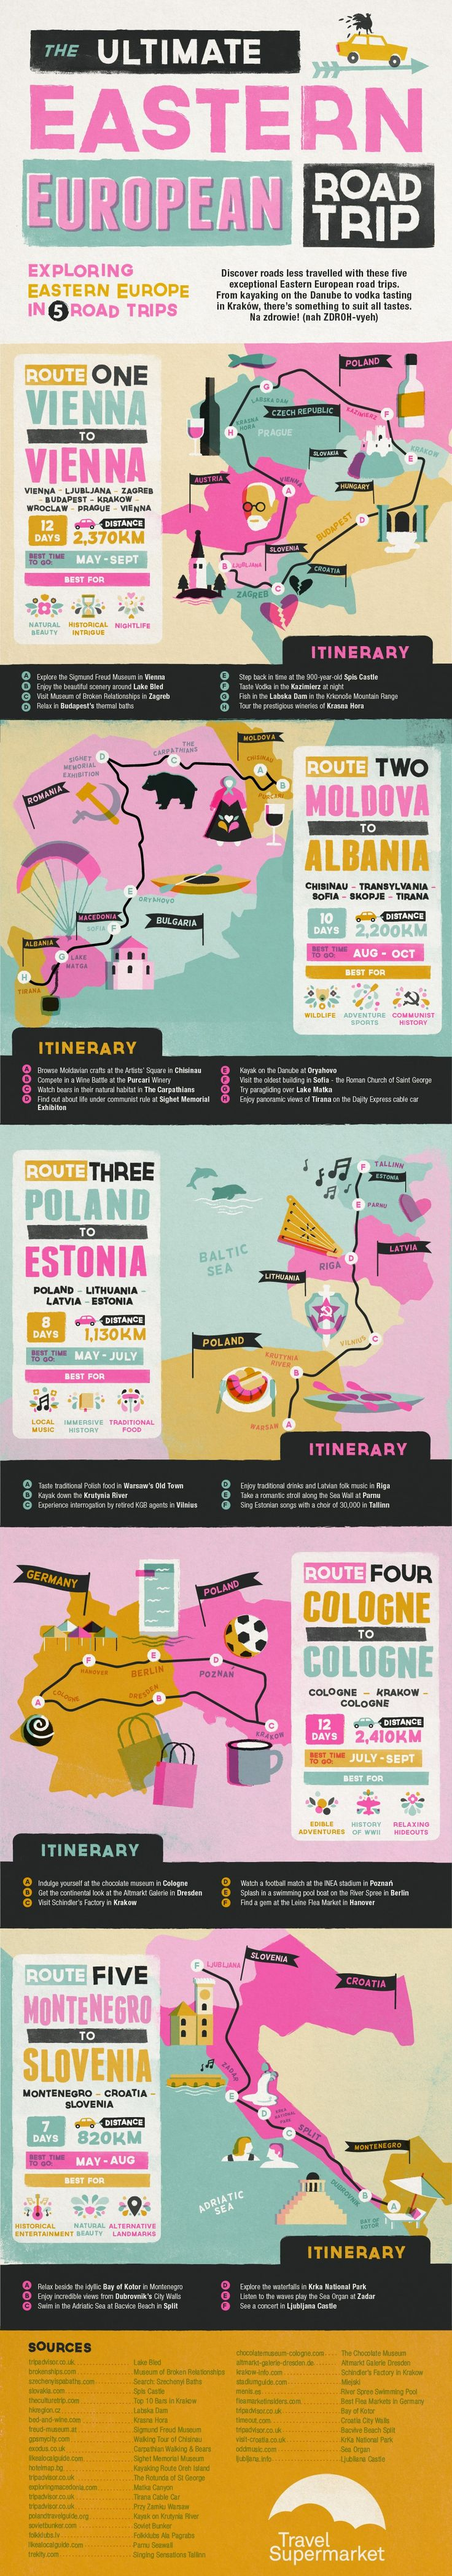 Infographic: Explore Eastern Europe in 5 road trips - Matador Network